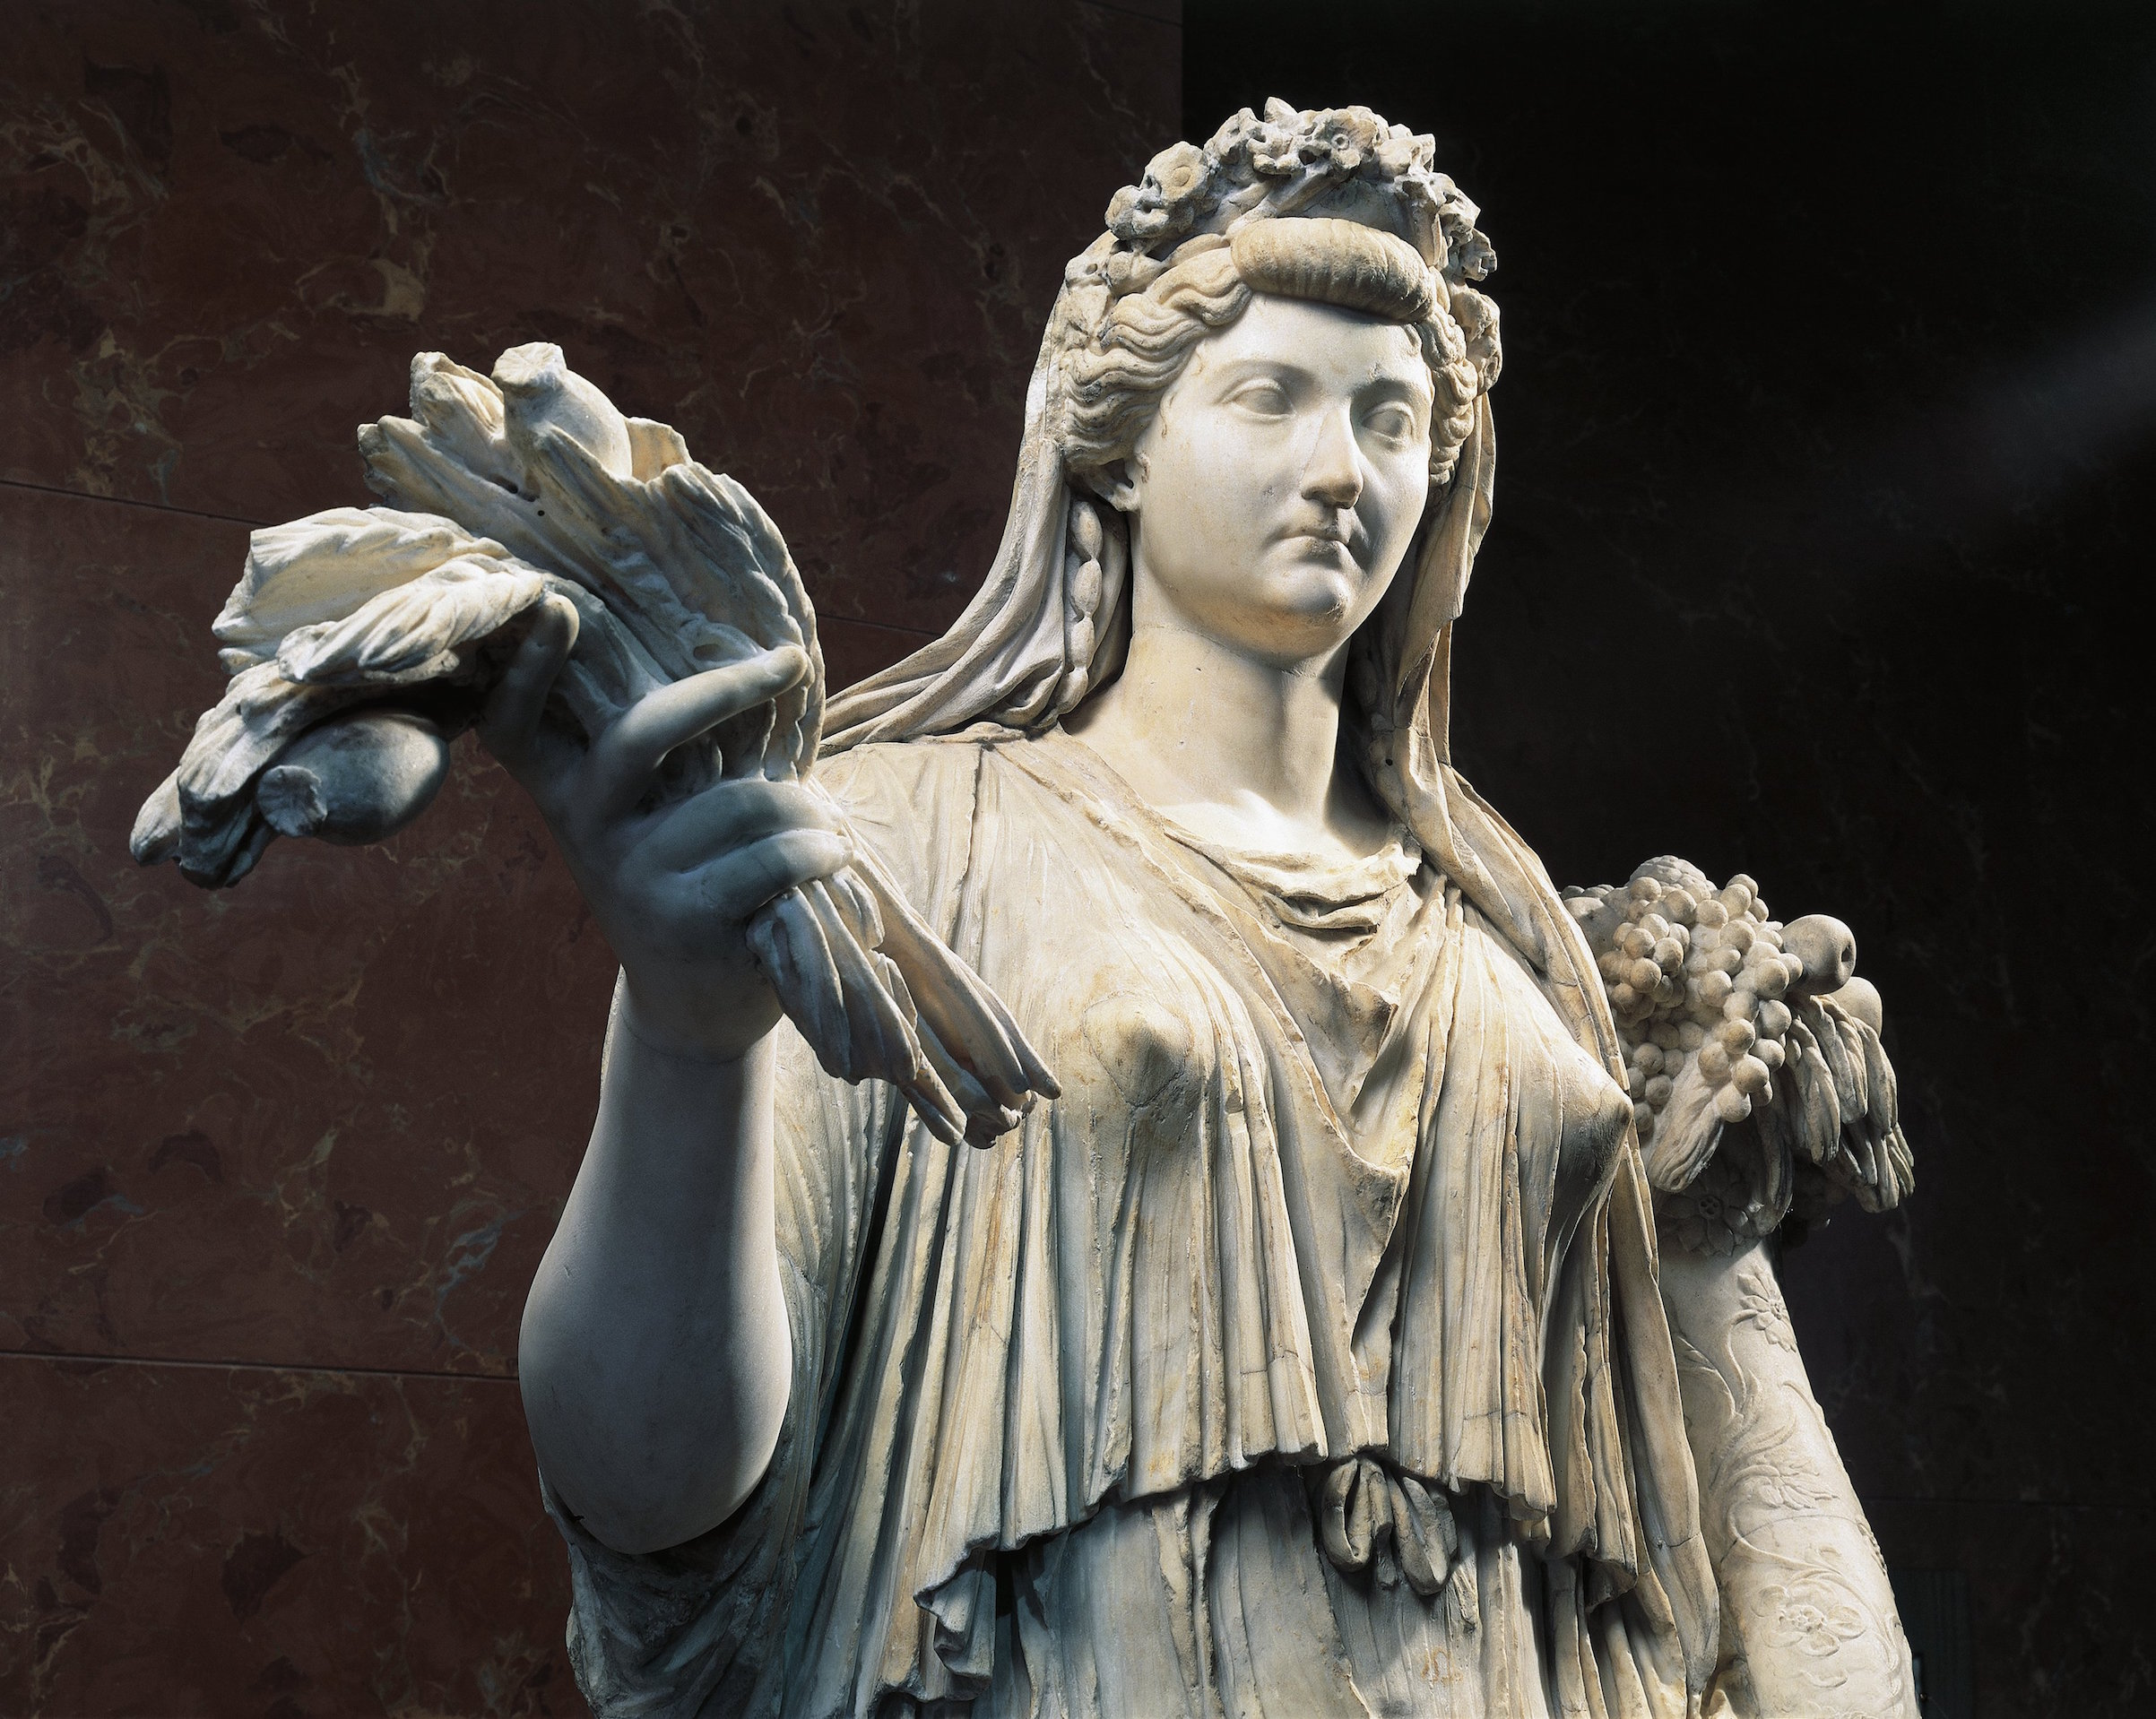 Marble statue of Livia, wife of emperor Octavian Augustus, from the 1st century AD.